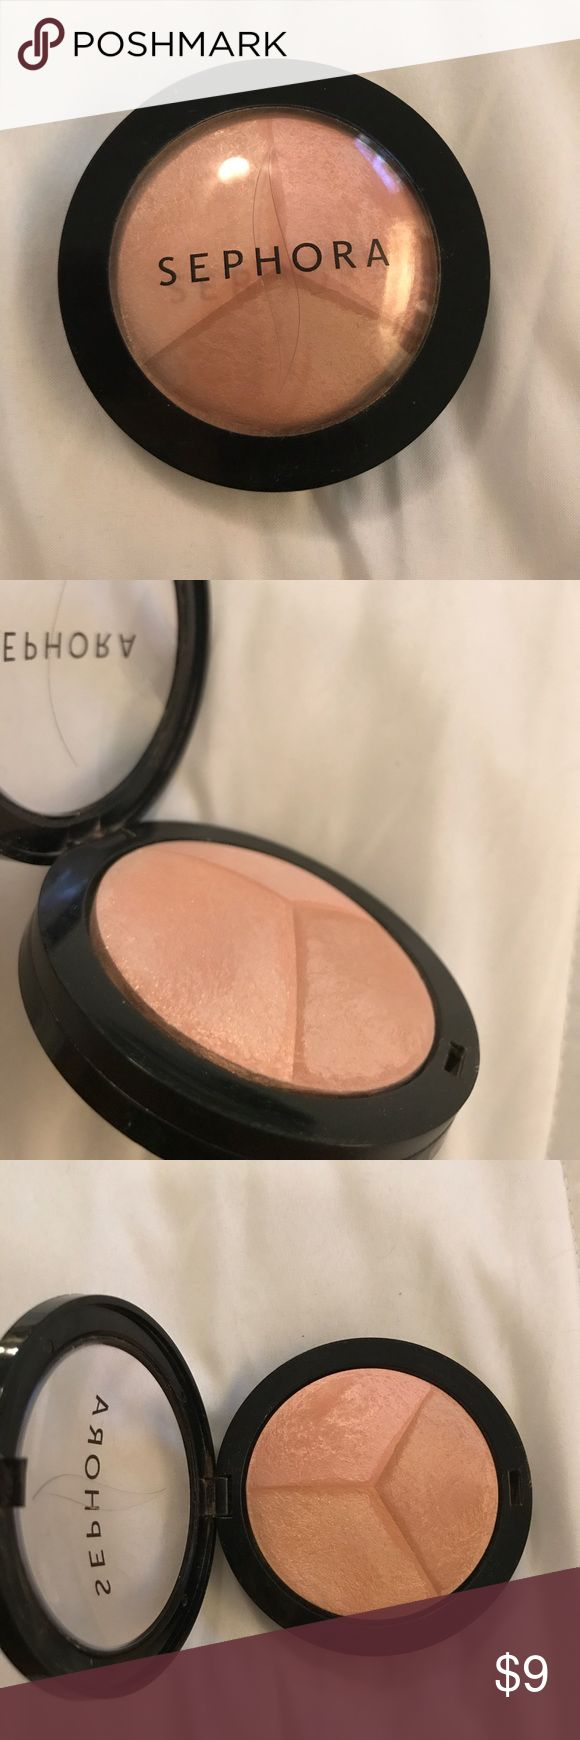 MicroSmooth Baked Sculpting Contour Trio Highlight Highlight by Sephora pink rose, beige, light pink/rose clair used a couple of times but still has a lot of product so it almost looks new Sephora Makeup Luminizer